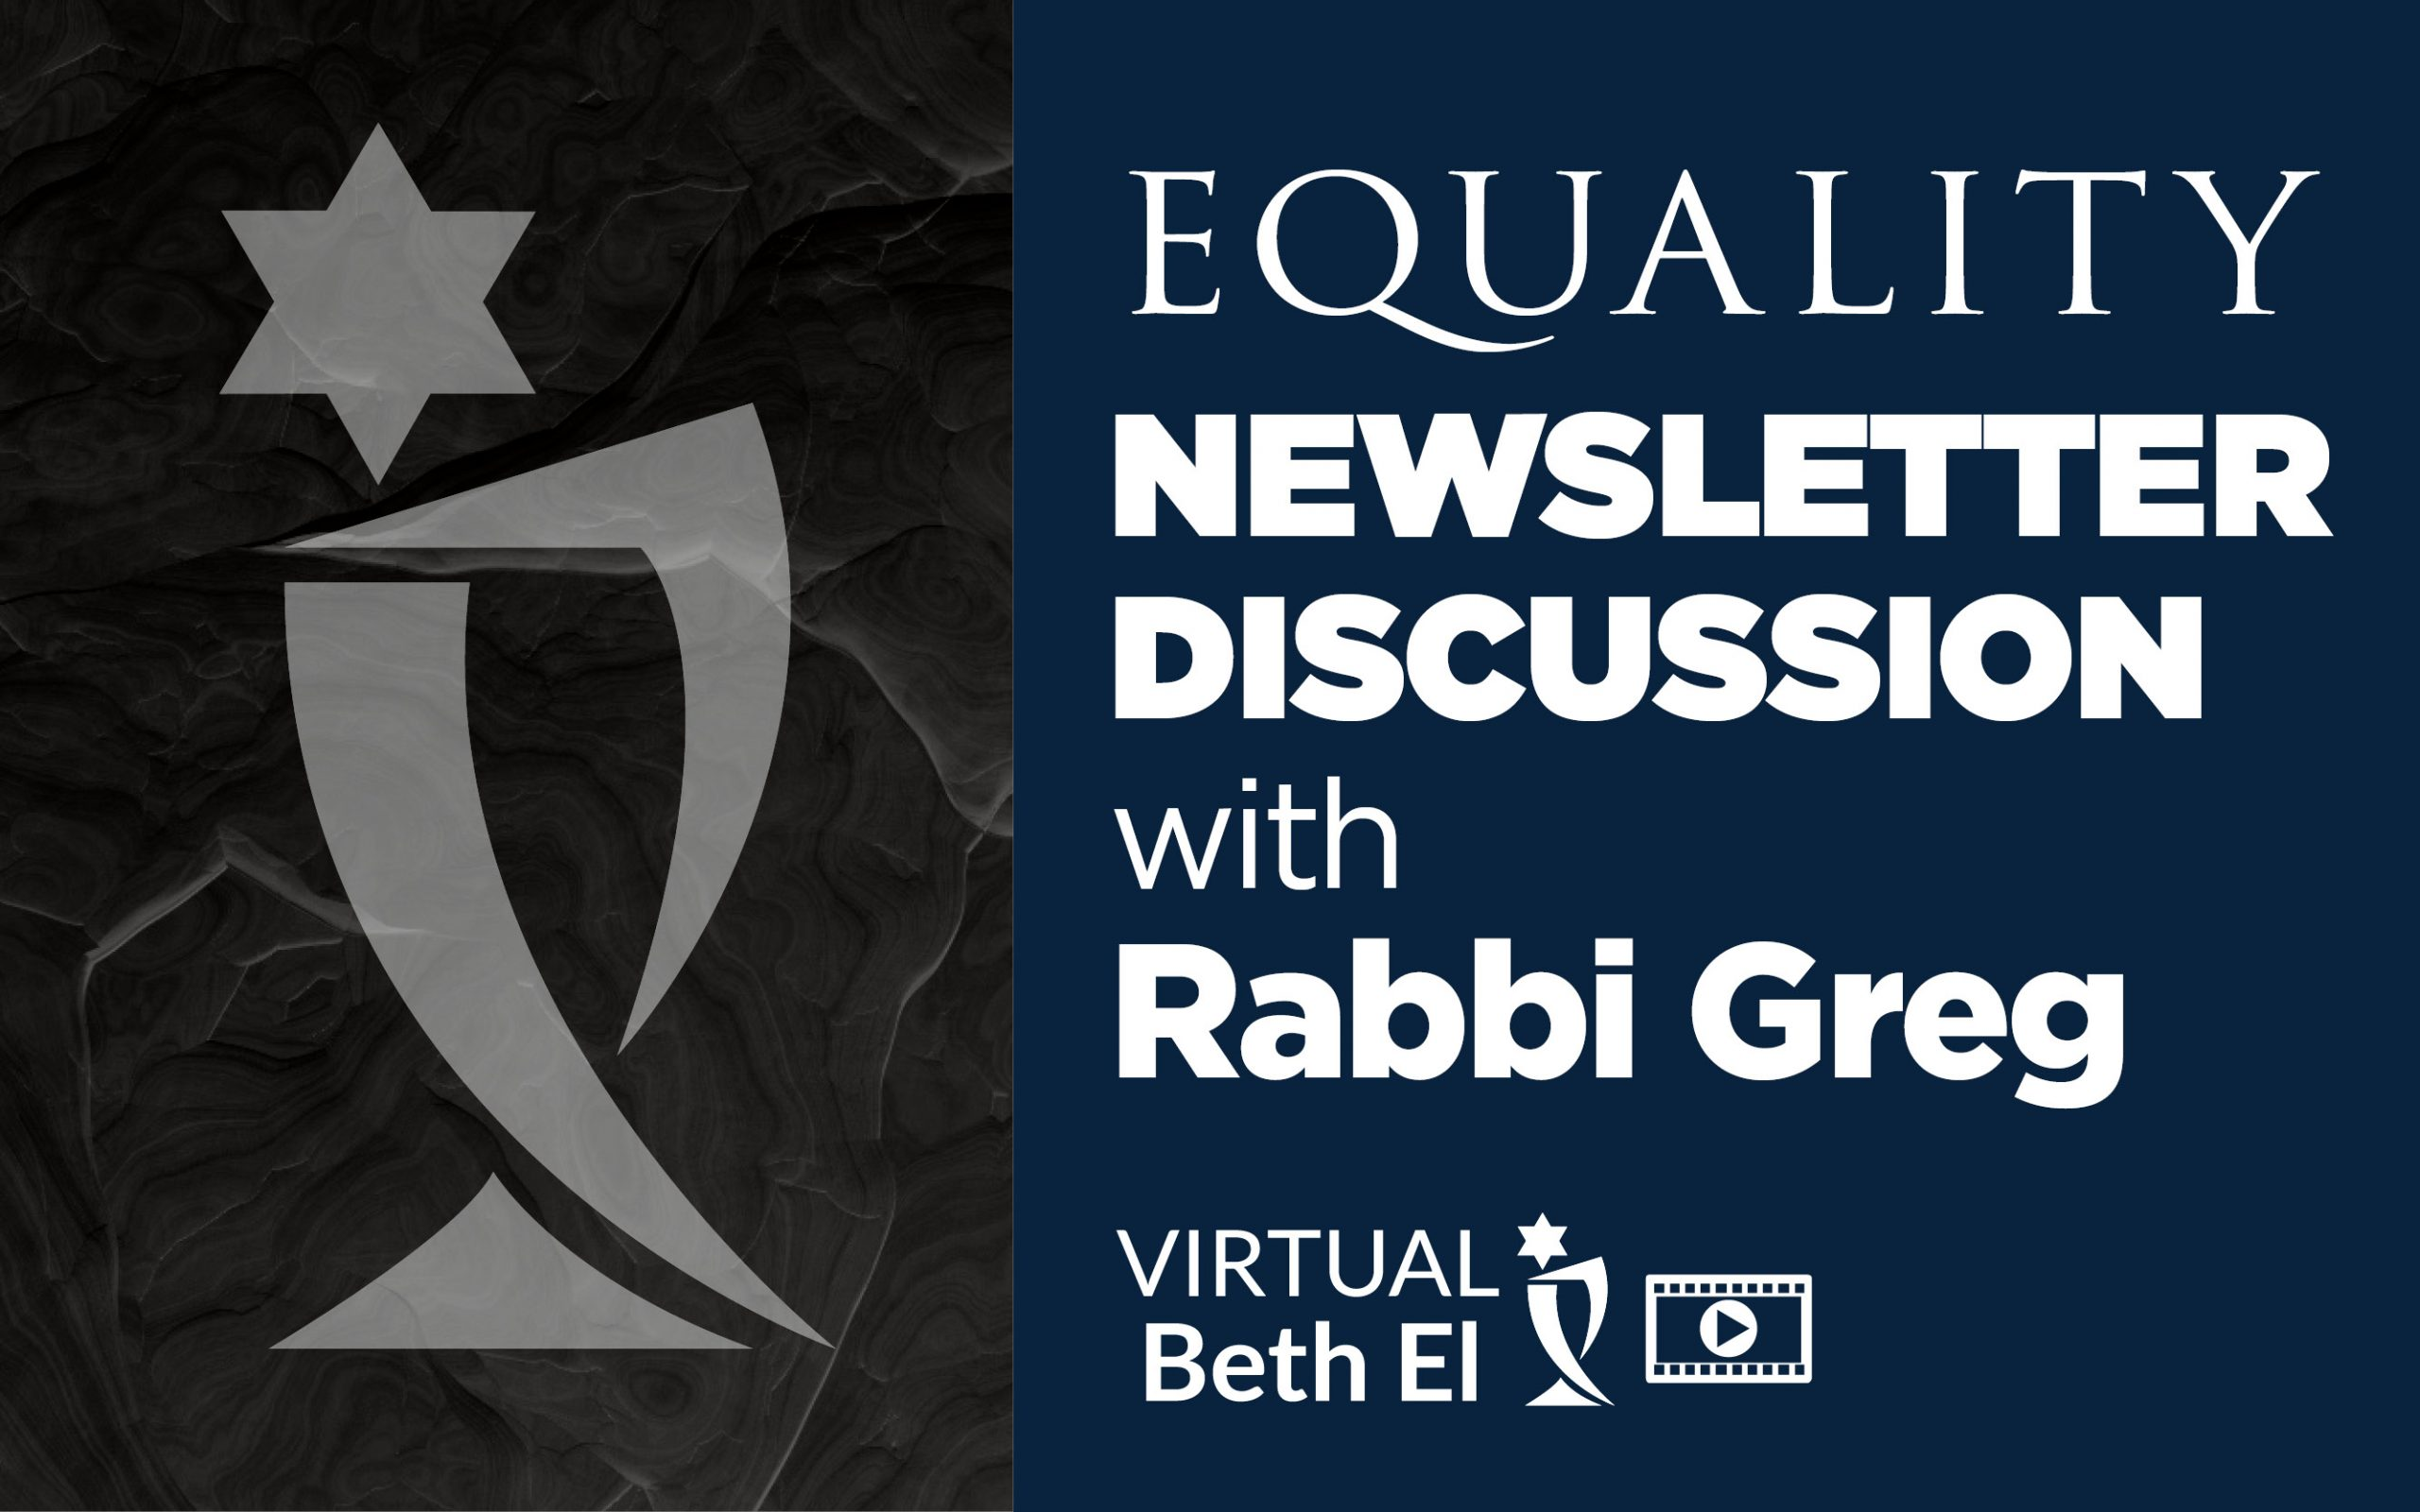 Equality Newsletter Discussion Group event graphic for Temple Beth El of Boca Raton